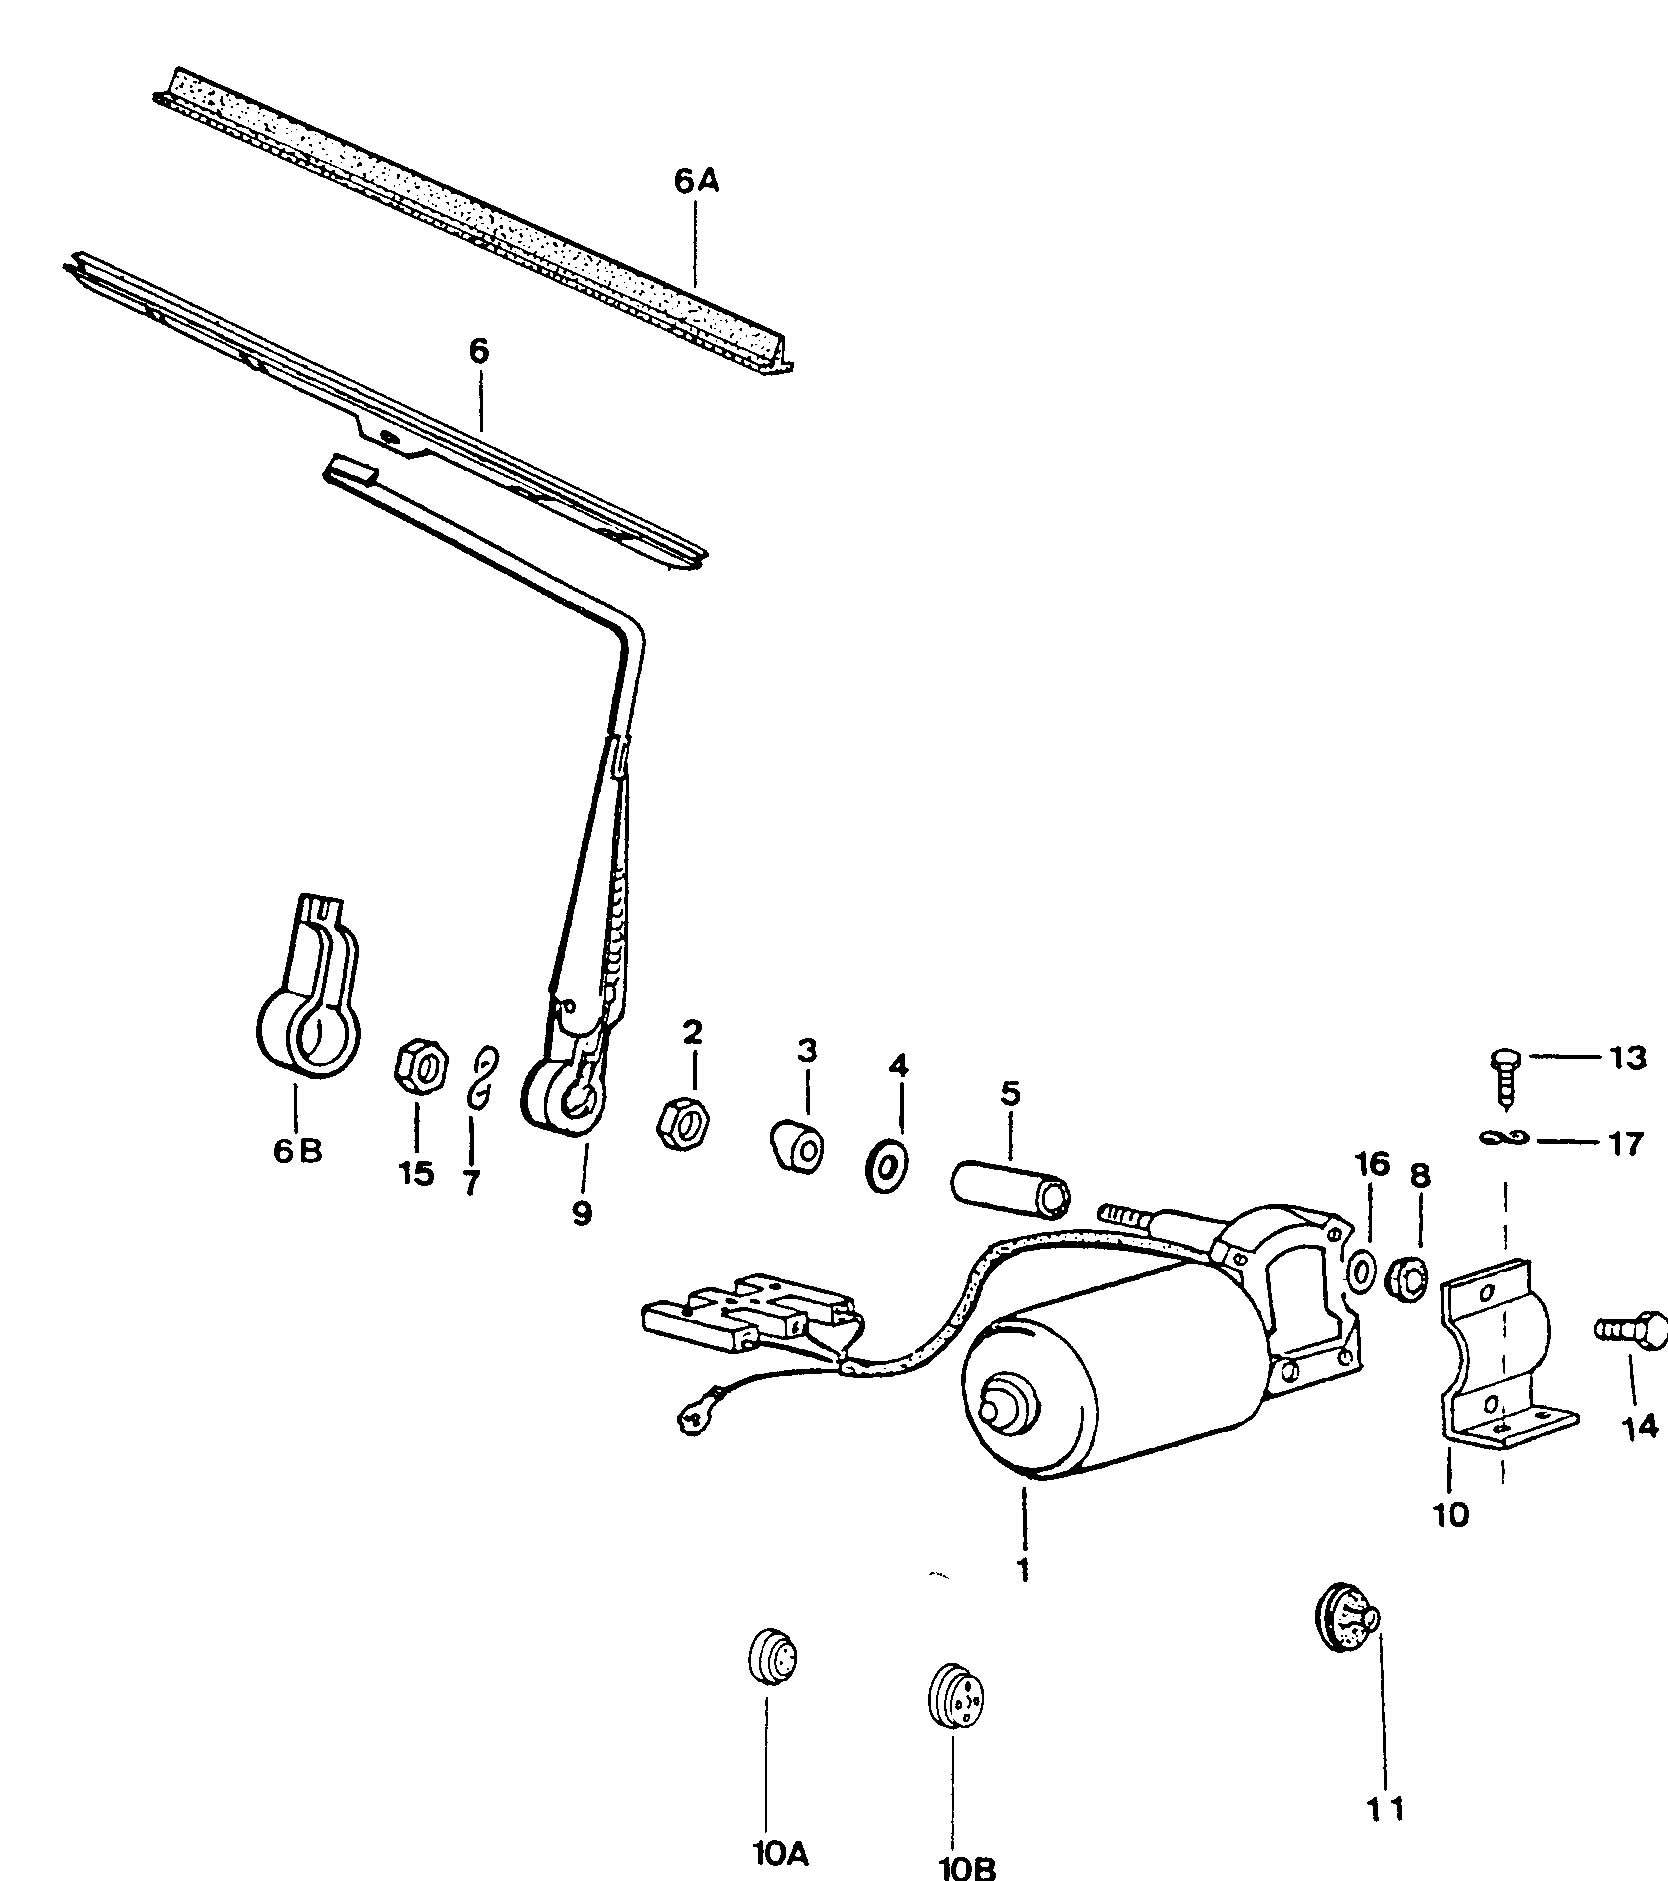 Diagram For A 2002 Hyundai Xg350 Swingarm Bearing Removal moreover Help Accord 1994 Upper Control Arm Balljoint Abs 2875126 as well Jeep Grand Cherokee Undercarriage Diagram besides 5oubr Center Console Doors Fix Leather Protruding furthermore Honda Accord 1998 Honda Accord 101. on acura rl control arm